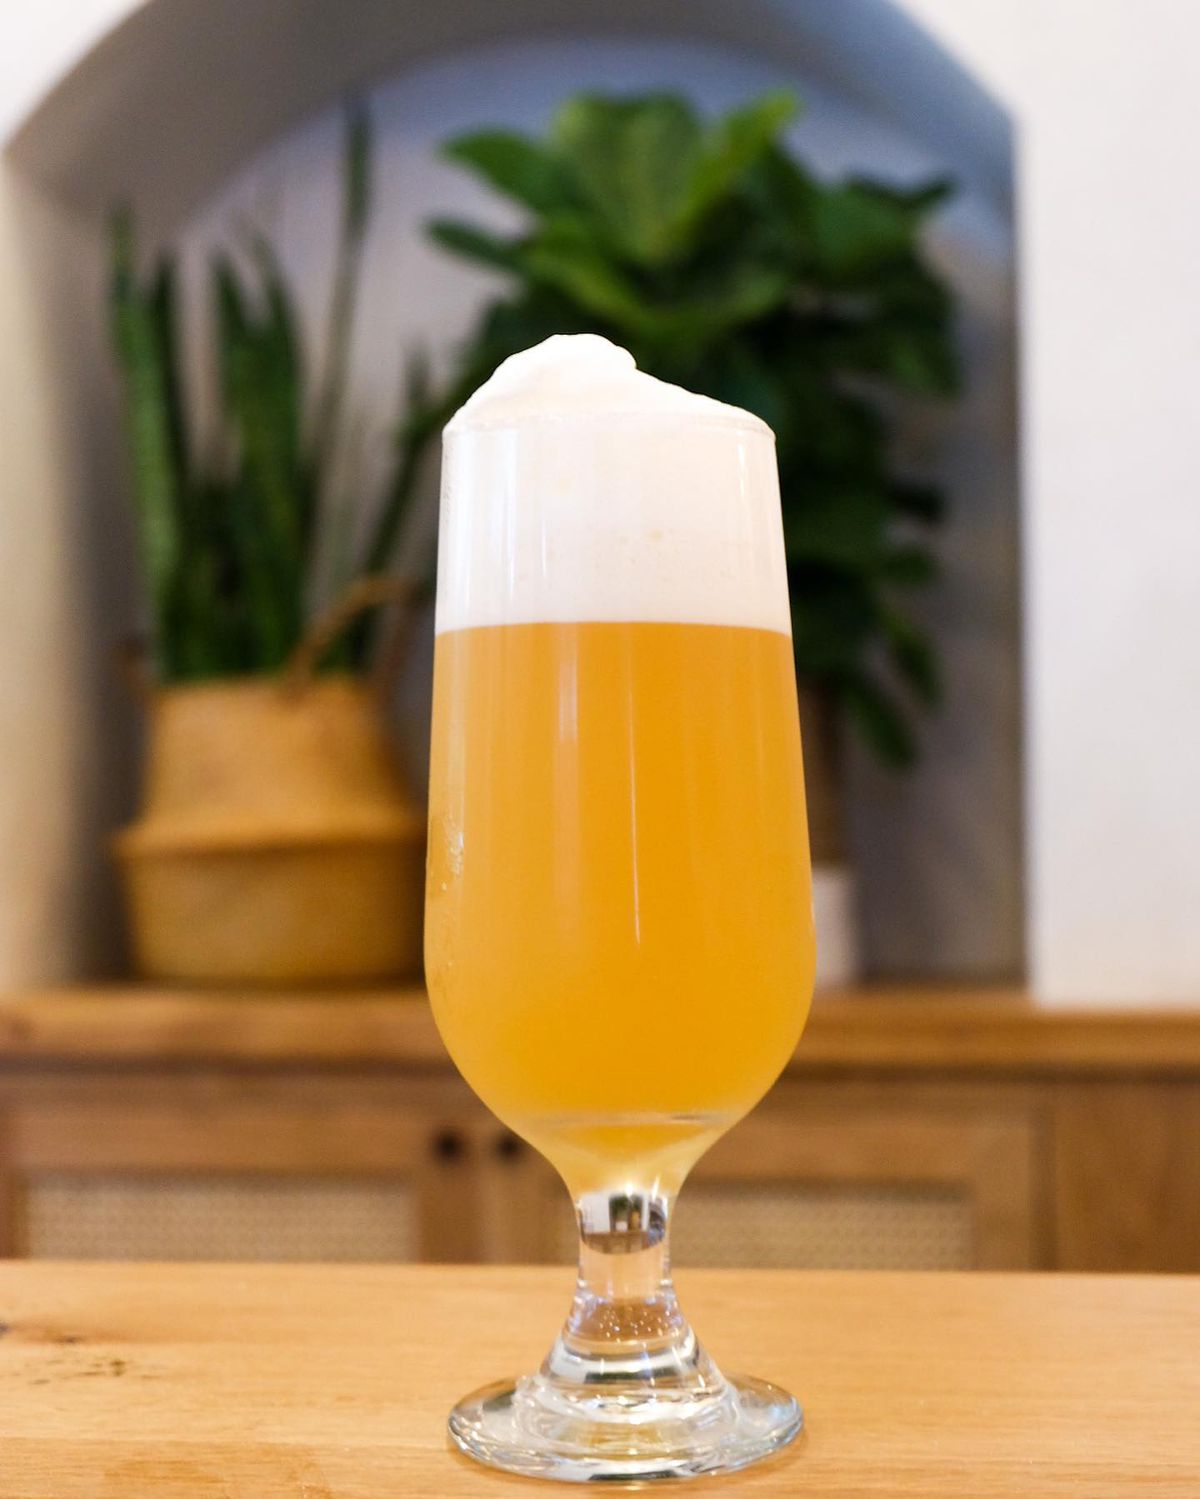 A tall stemmed glass of Galaxy Corkscrew double IPA with a frothy head